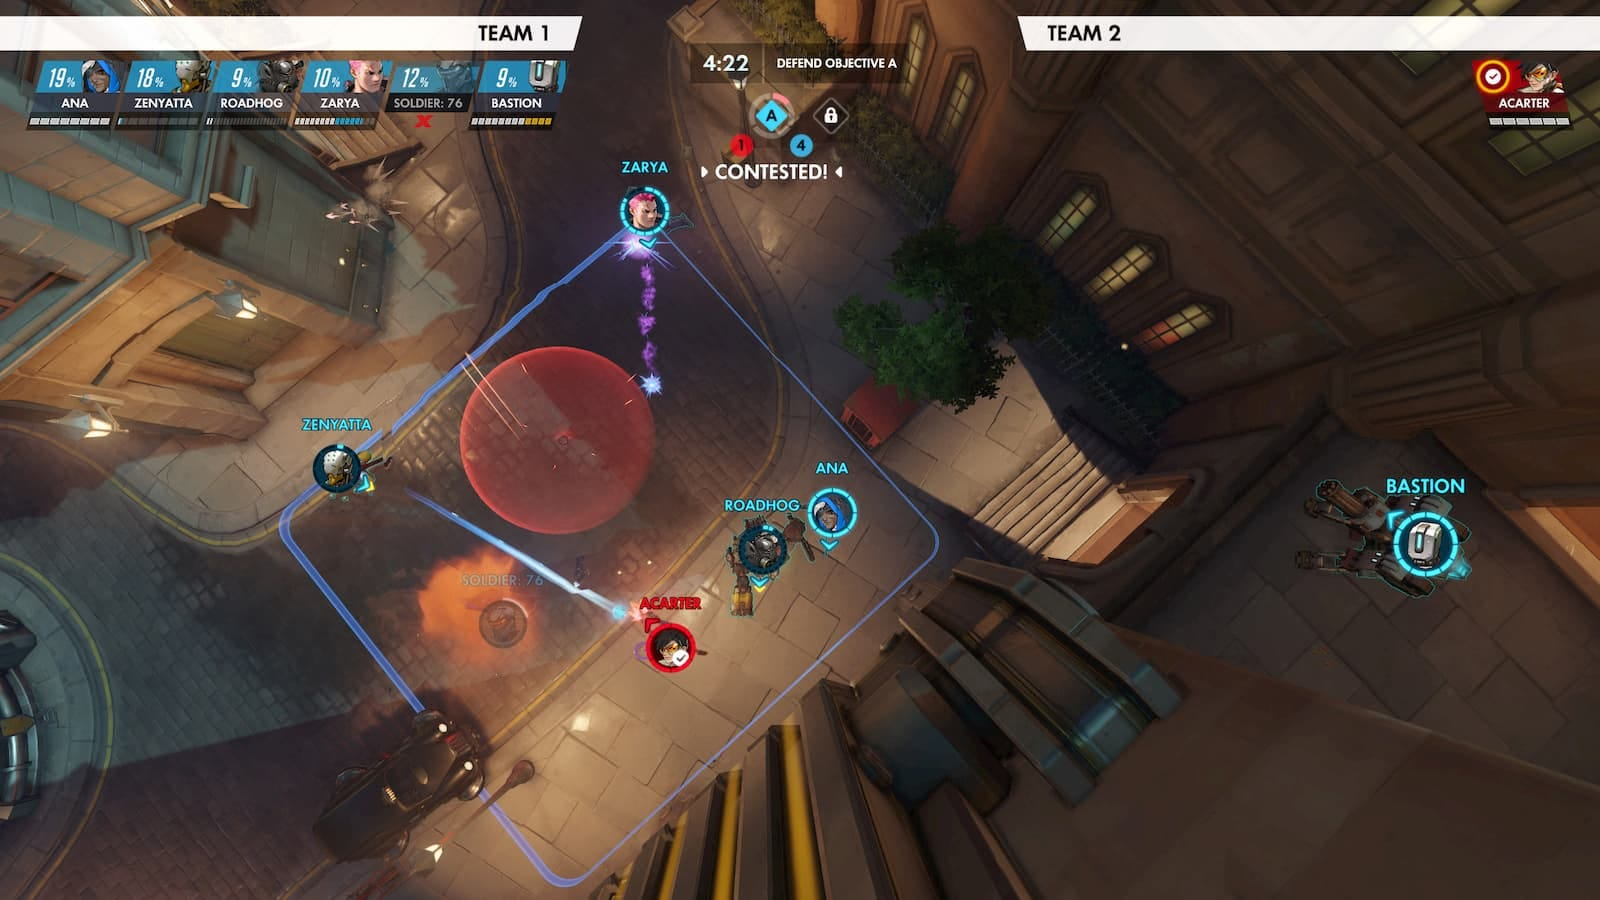 Overwatch' will let you rewatch your matches from any angle